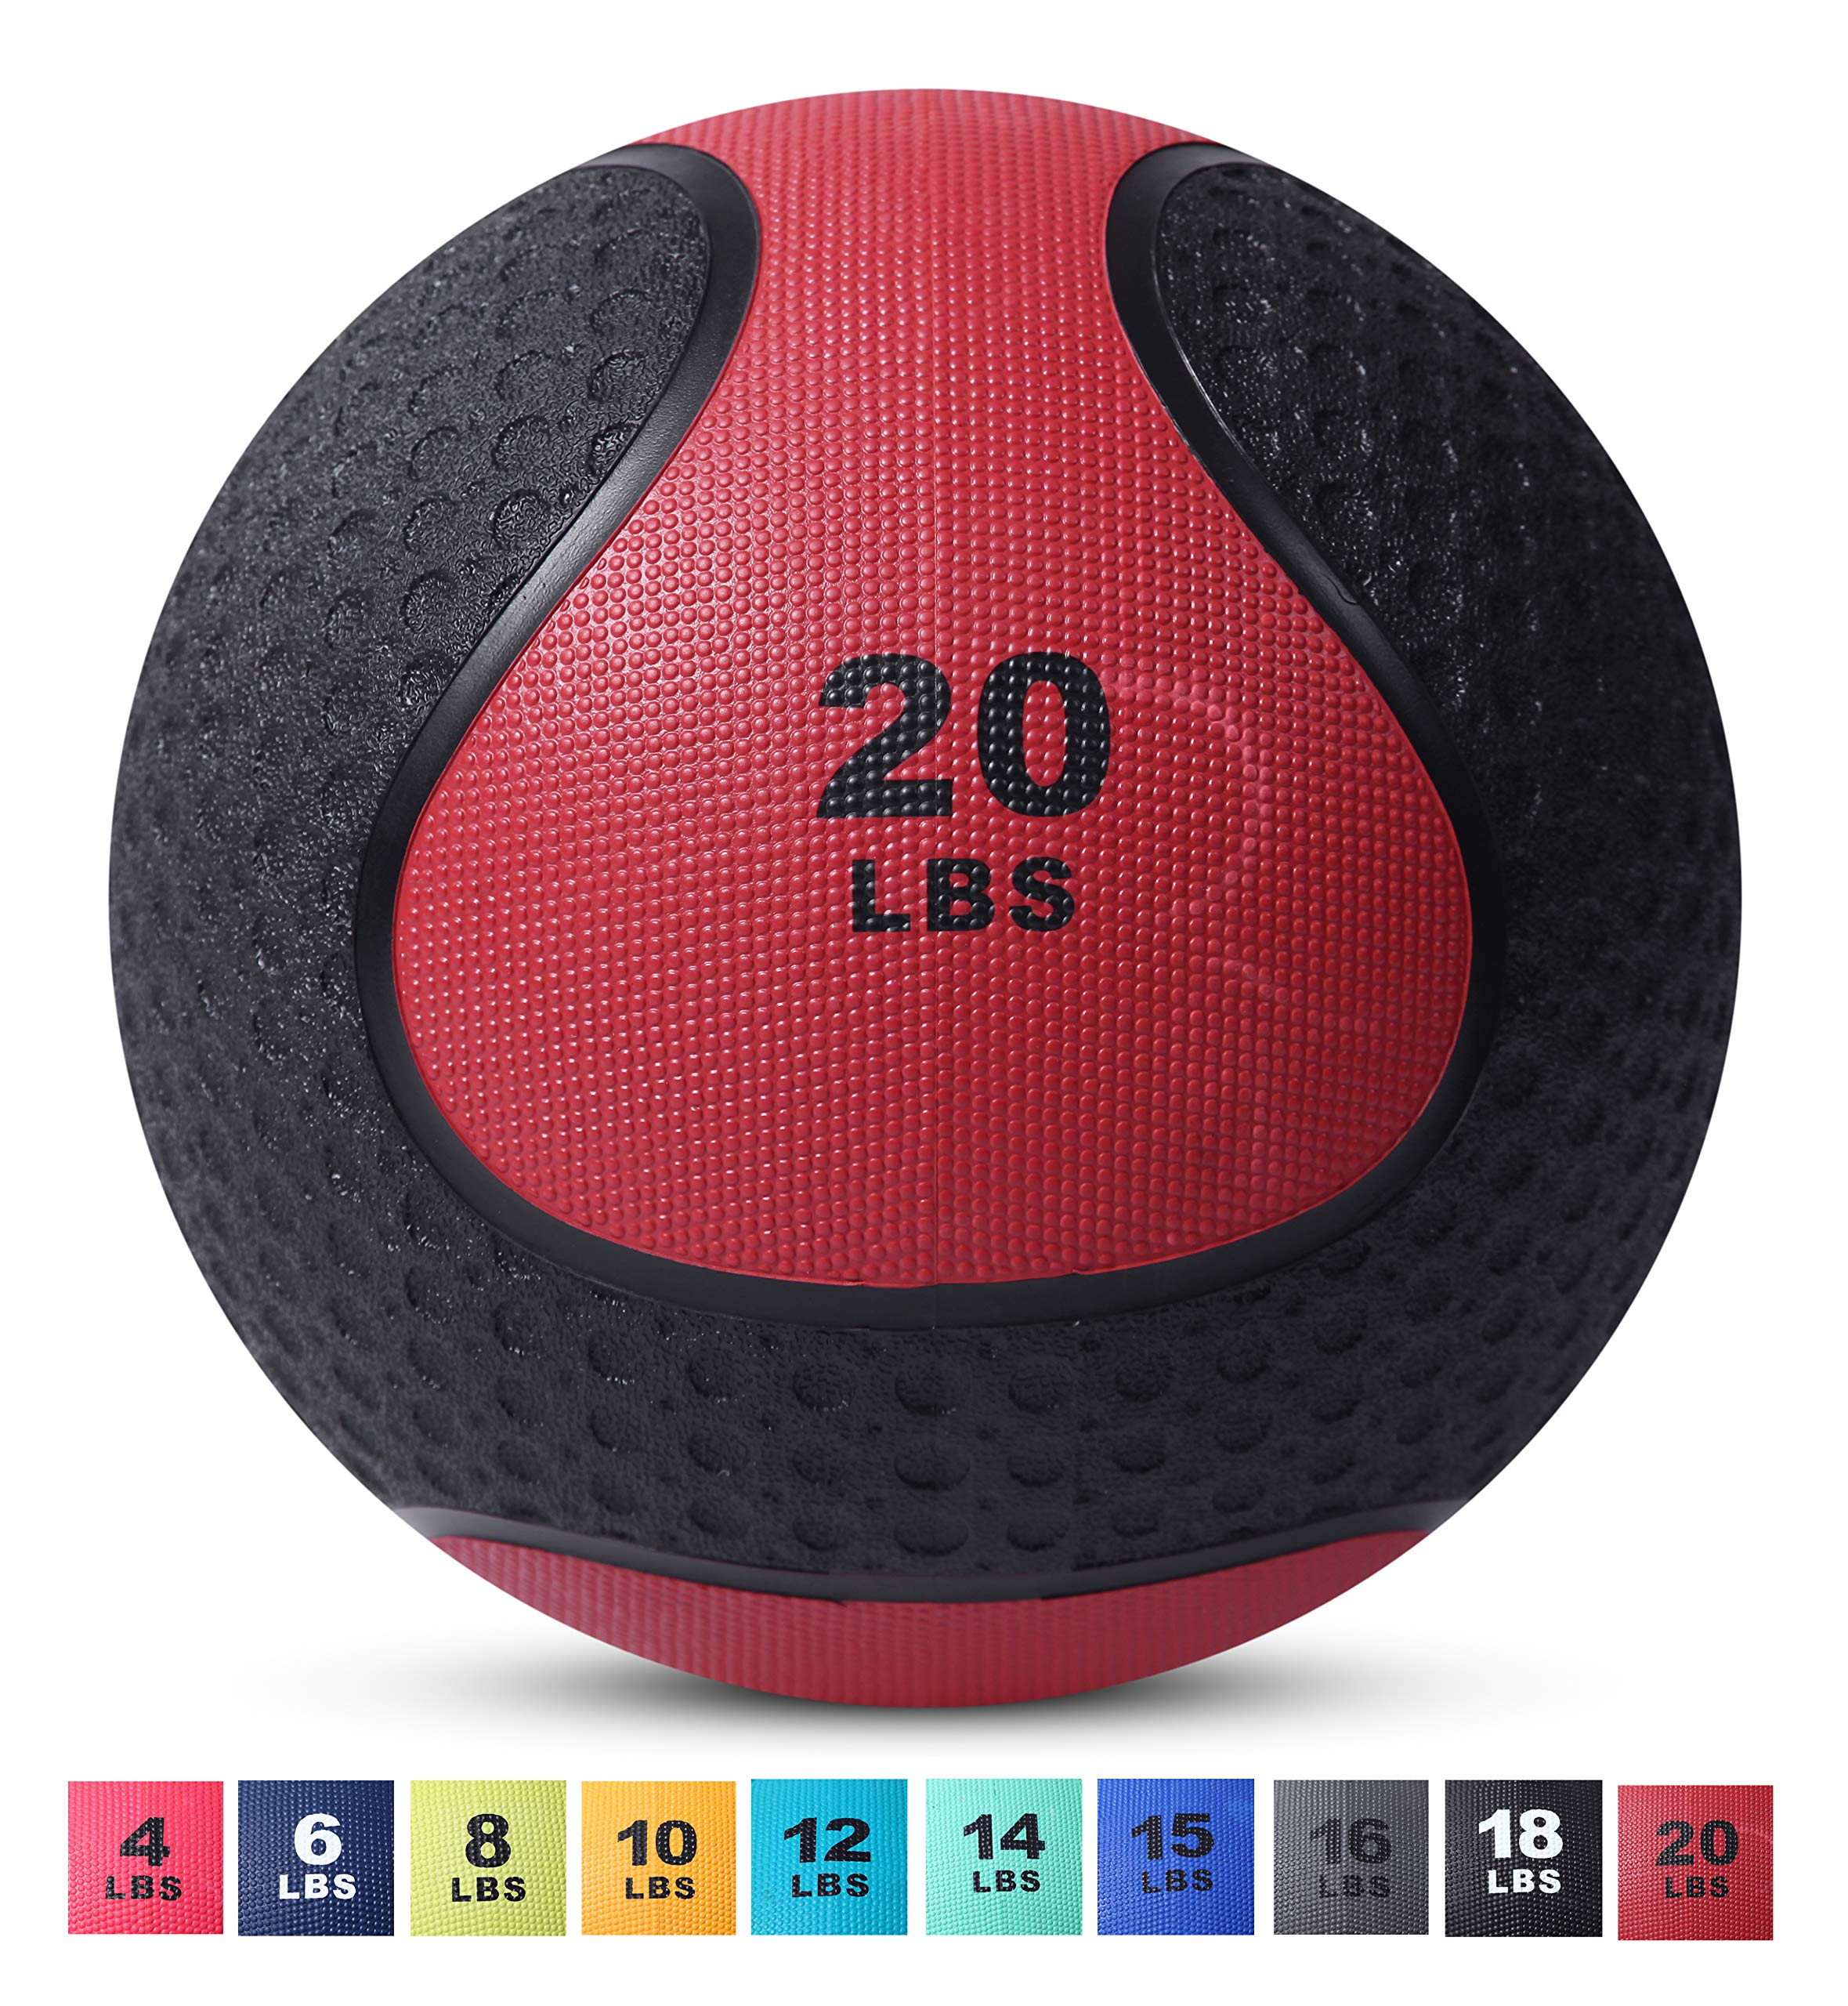 Day 1 Fitness Medicine Exercise Ball with Dual Texture for Superior Grip 20 Pounds - Fitness Balls for Plyometrics, Workouts - Improves Balance, Flexibility, Coordination